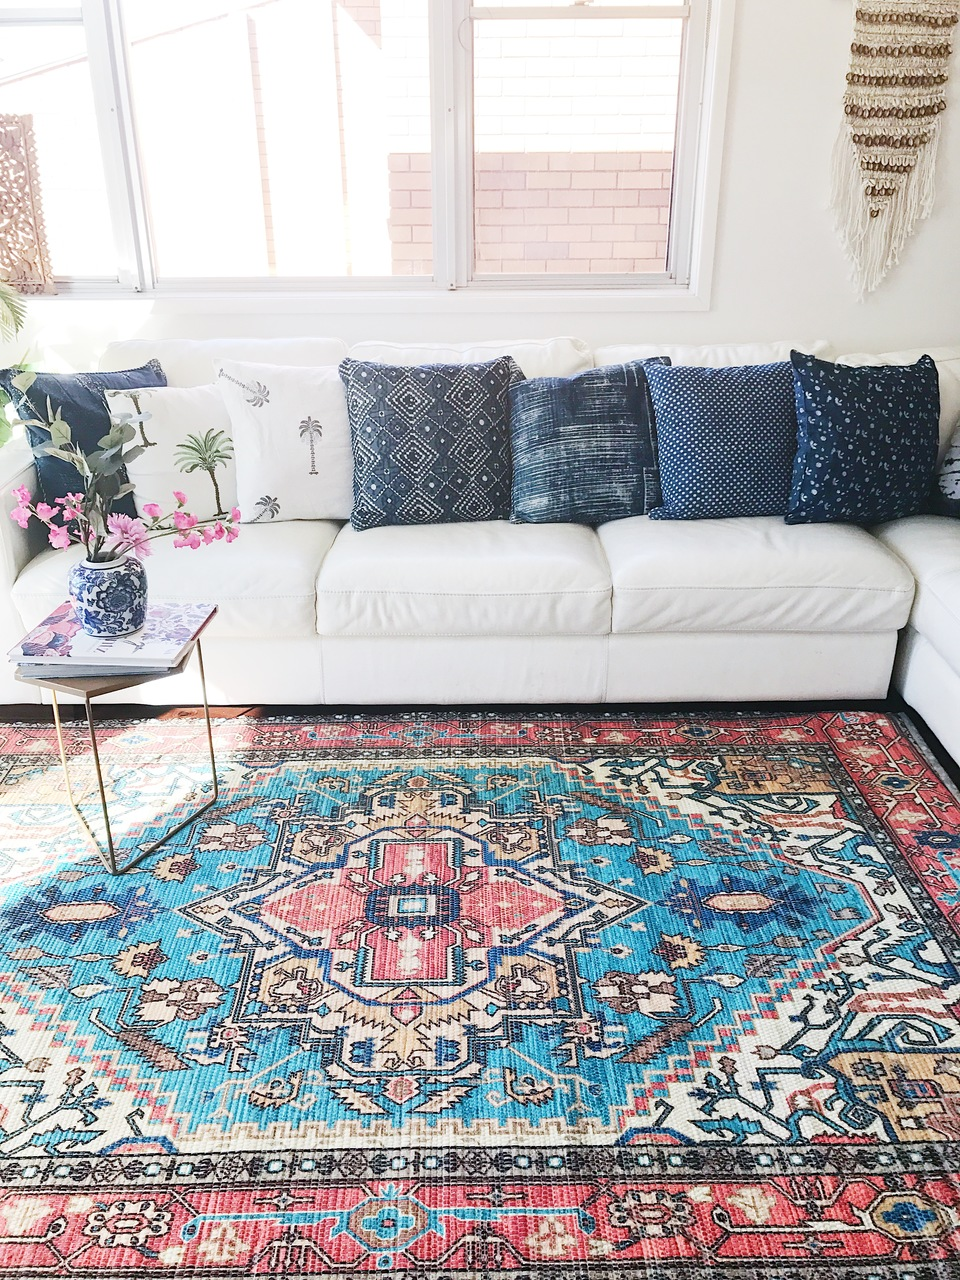 Boheme Upcycled Rug by Peacocks and Paisley, a Contemporary Rugs for sale on Style Sourcebook